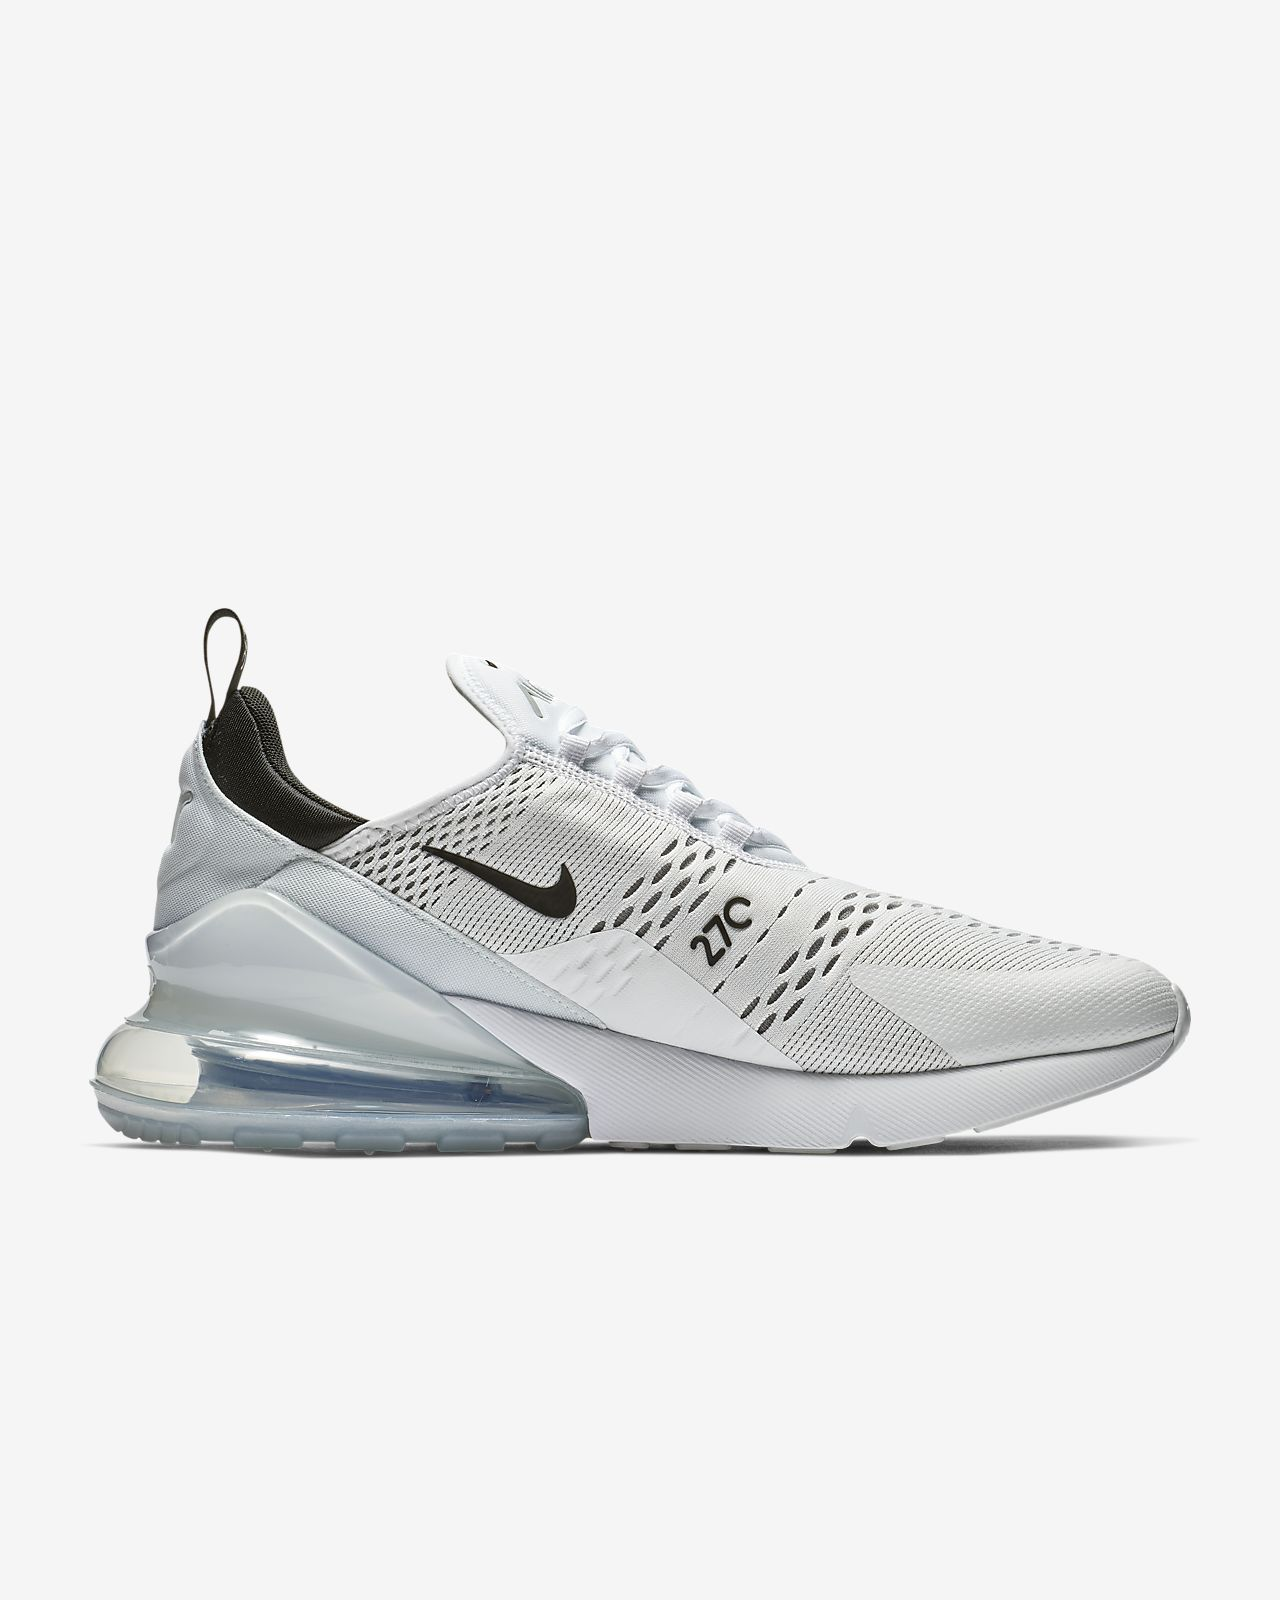 Off White X Nike Air Max 270 Black 2018 New Style in 2020